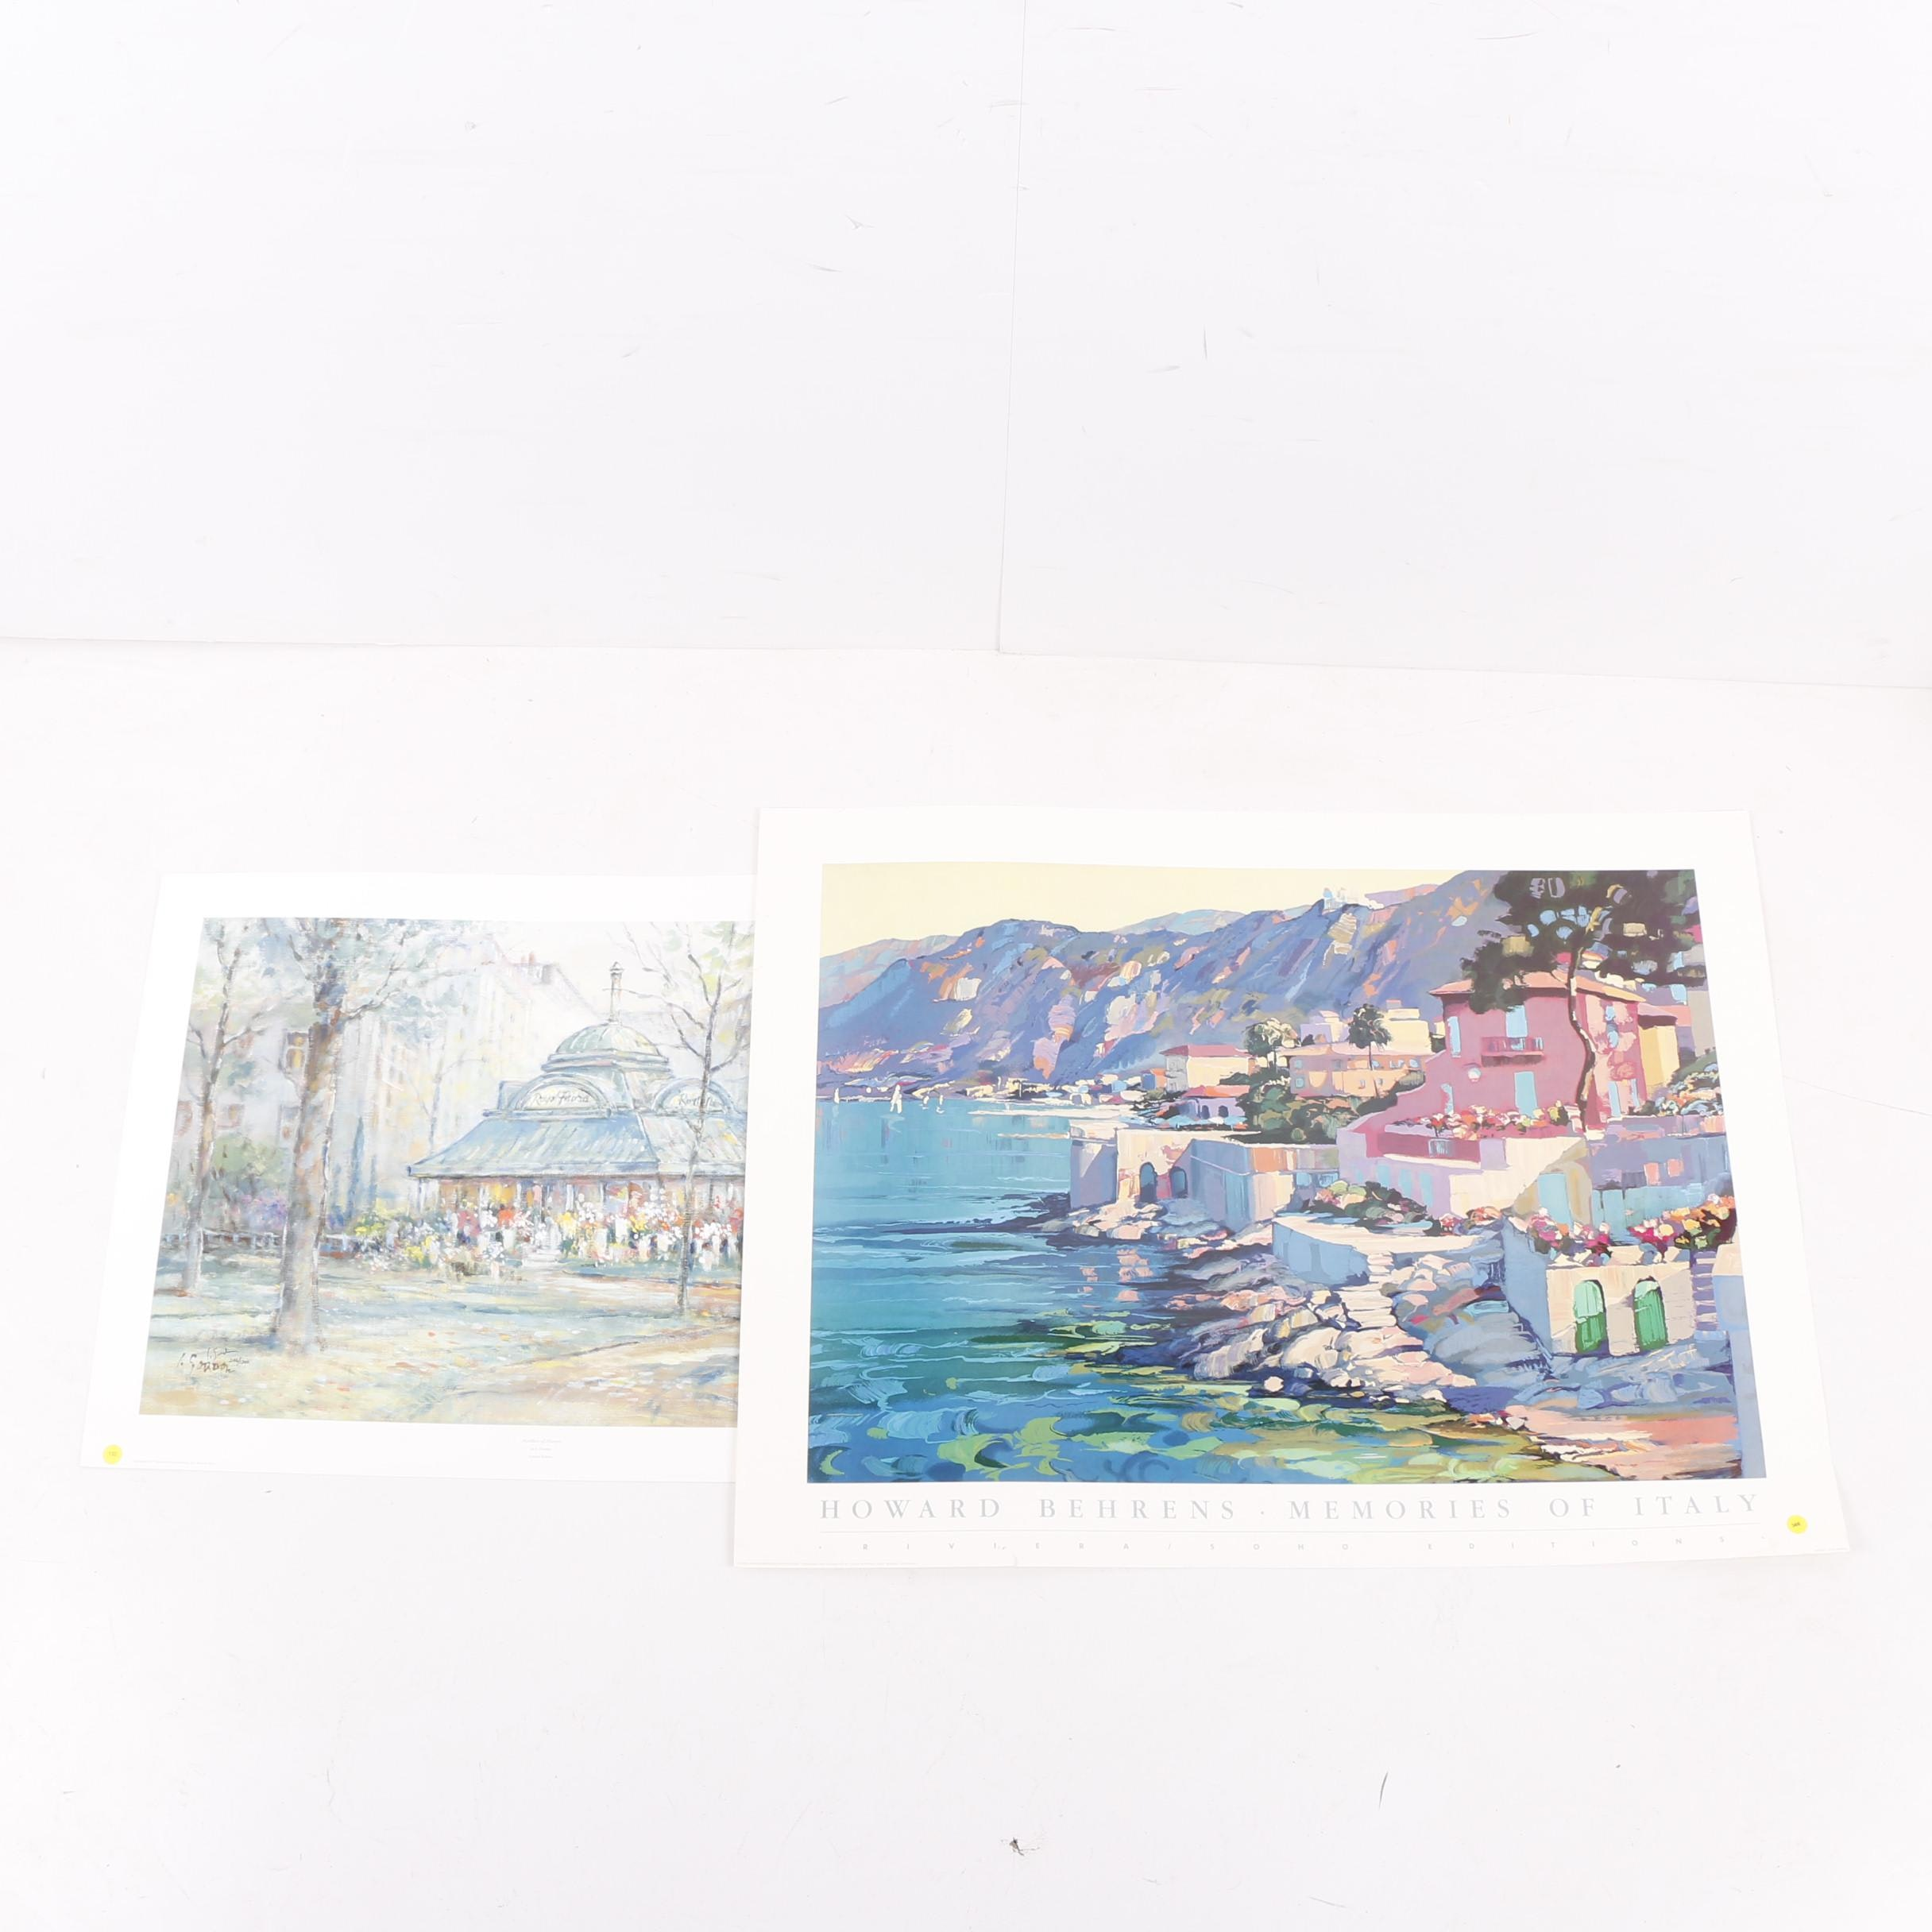 L. Gordon Limited Edition Offset Lithograph and Poster After Howard Behrens